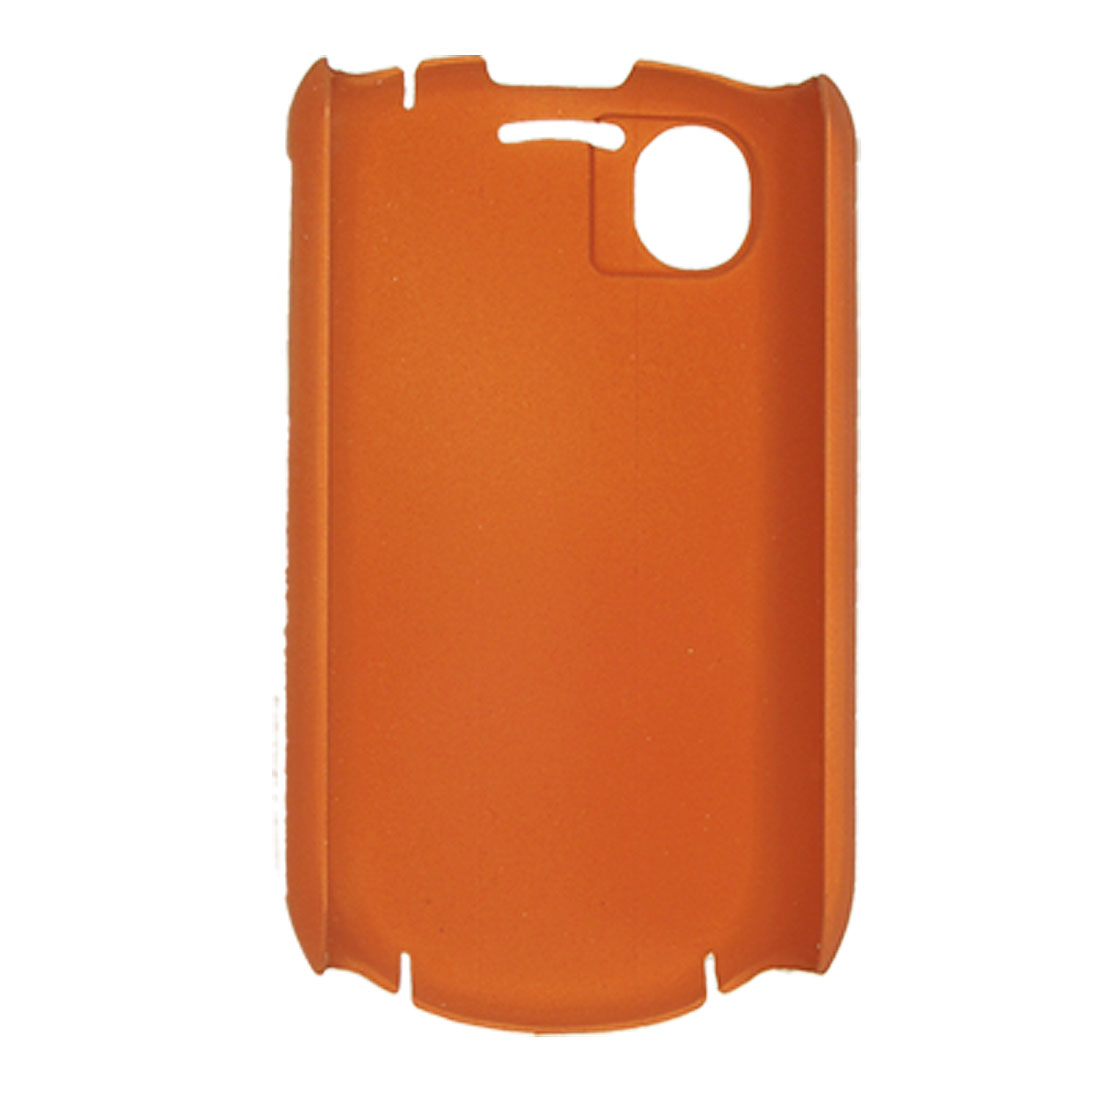 Hard Plastic Back Case Shell for HTC Google Tattoo G4